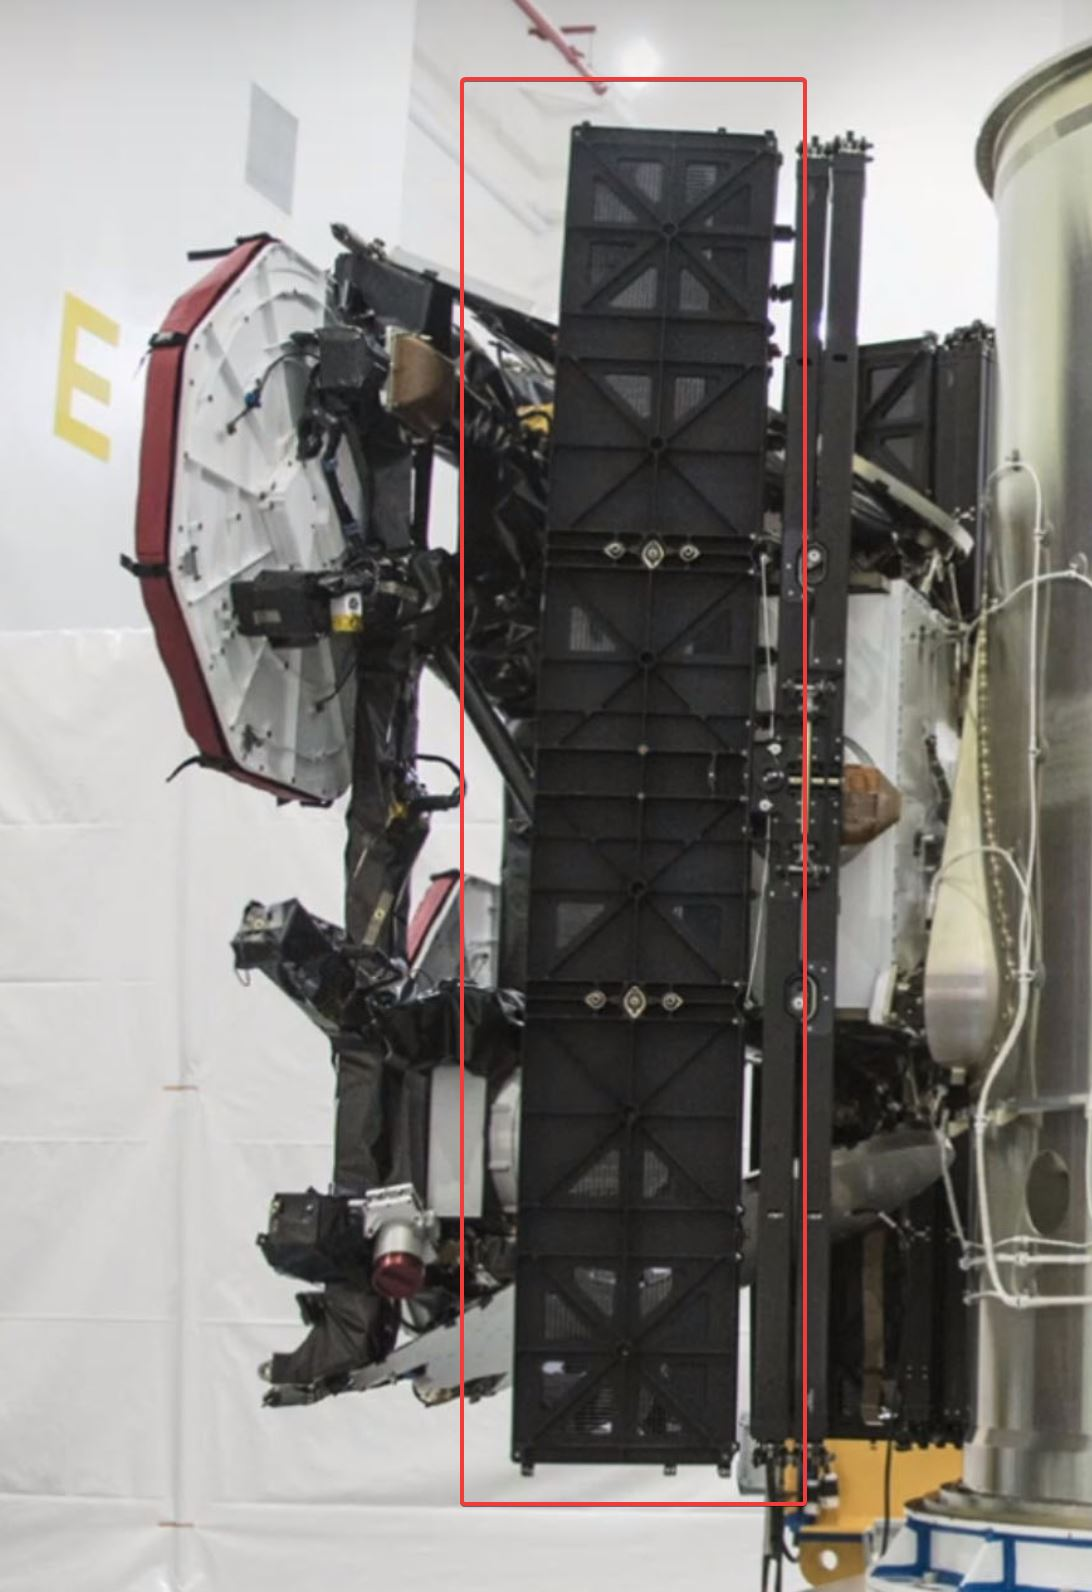 Spacexs Starlink Satellites May Use Unique Solar Array Deployment Champion Ultrastar Wiring Diagram Unlike Any Discernible Panel Mechanism With A Flight History Engineers Seem To Have Taken Style Of Used